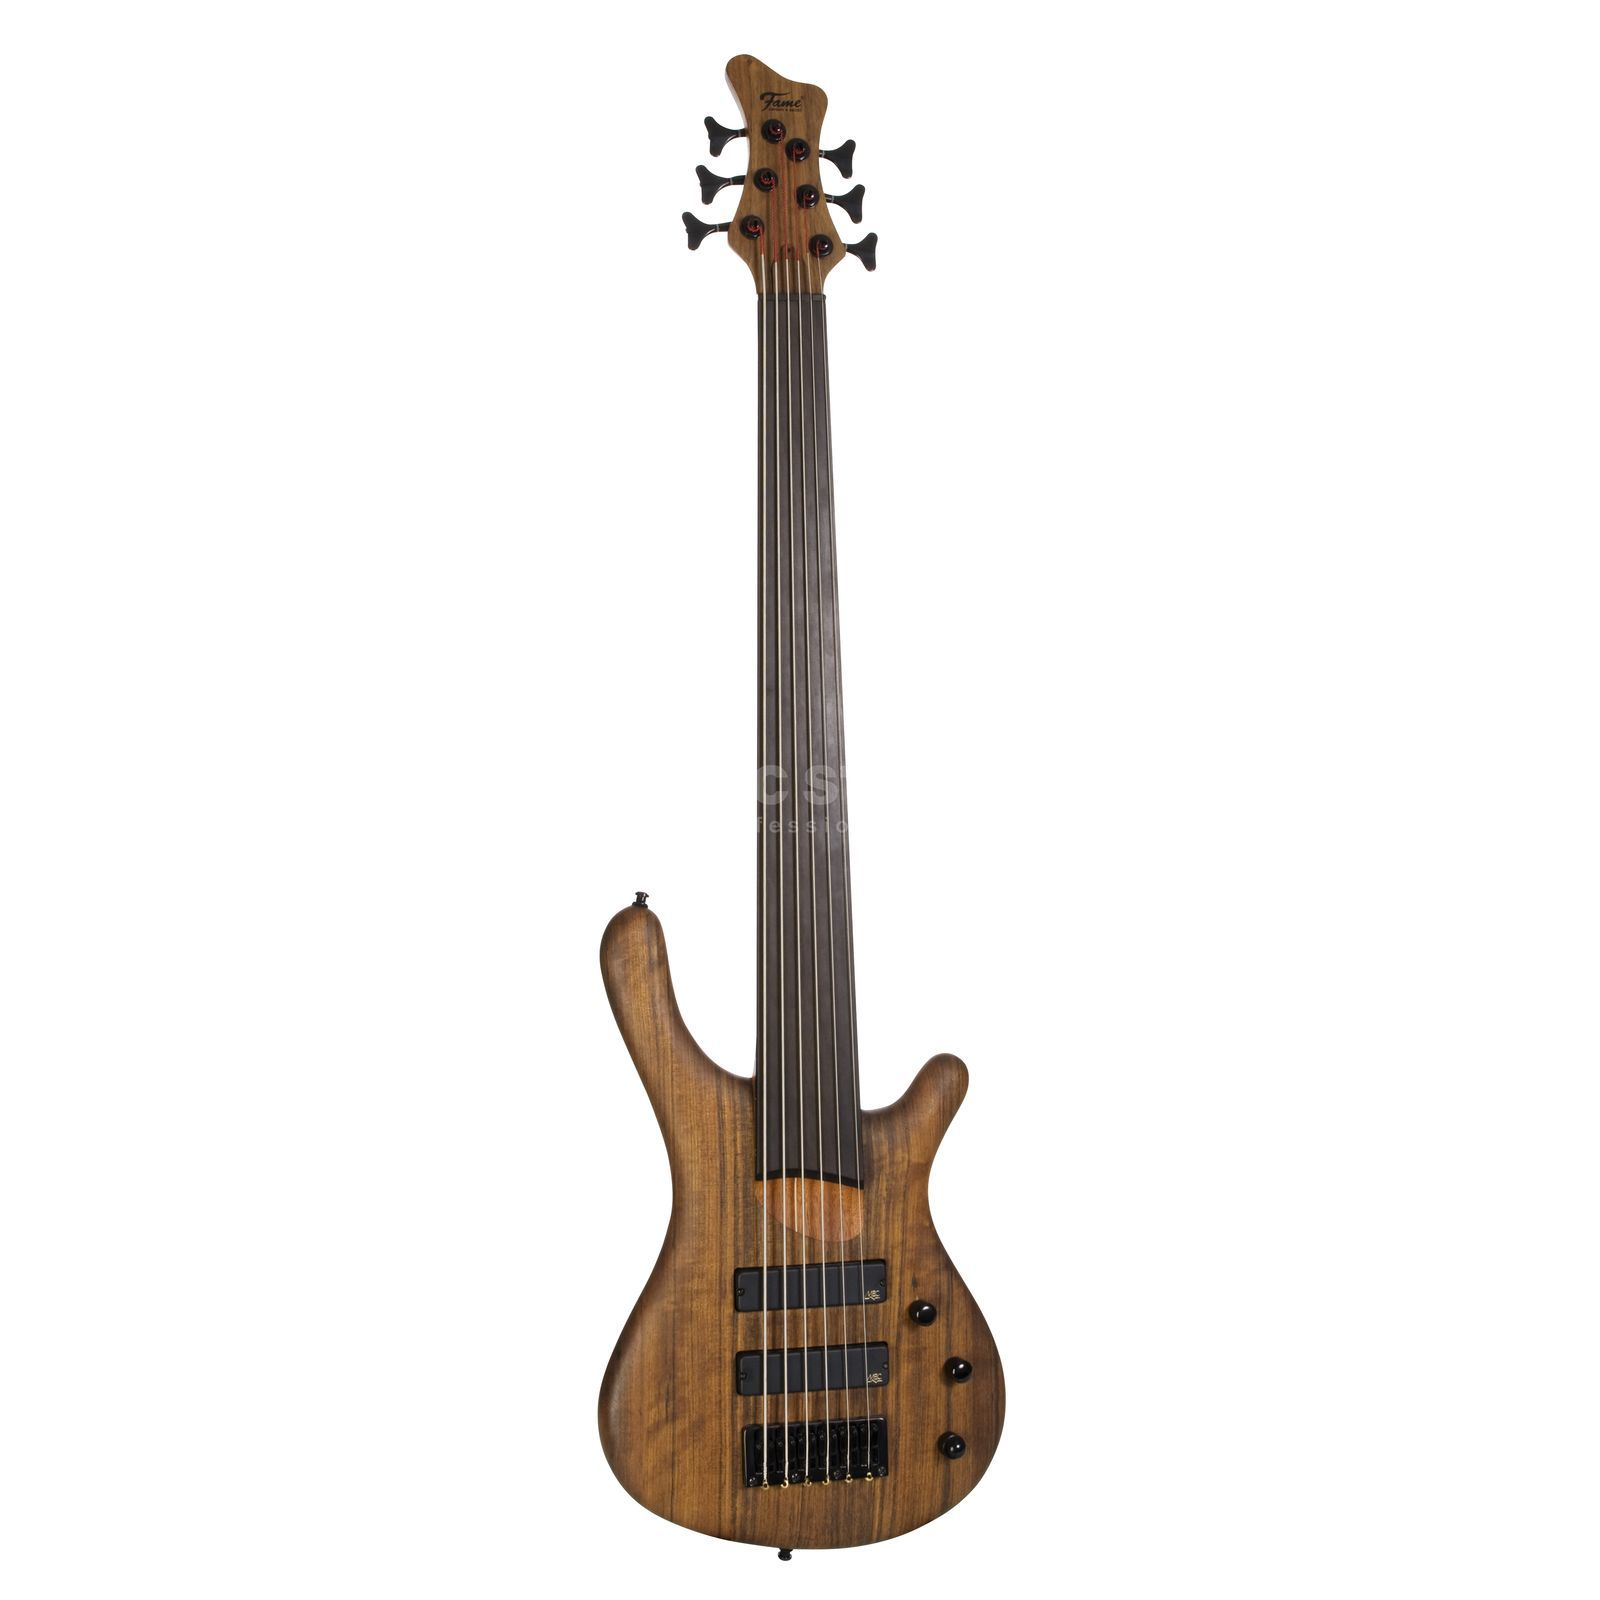 Fame Baphomet 6 Fretless NT 6-Strin g, E-Bass Guitar, Natural Product Image